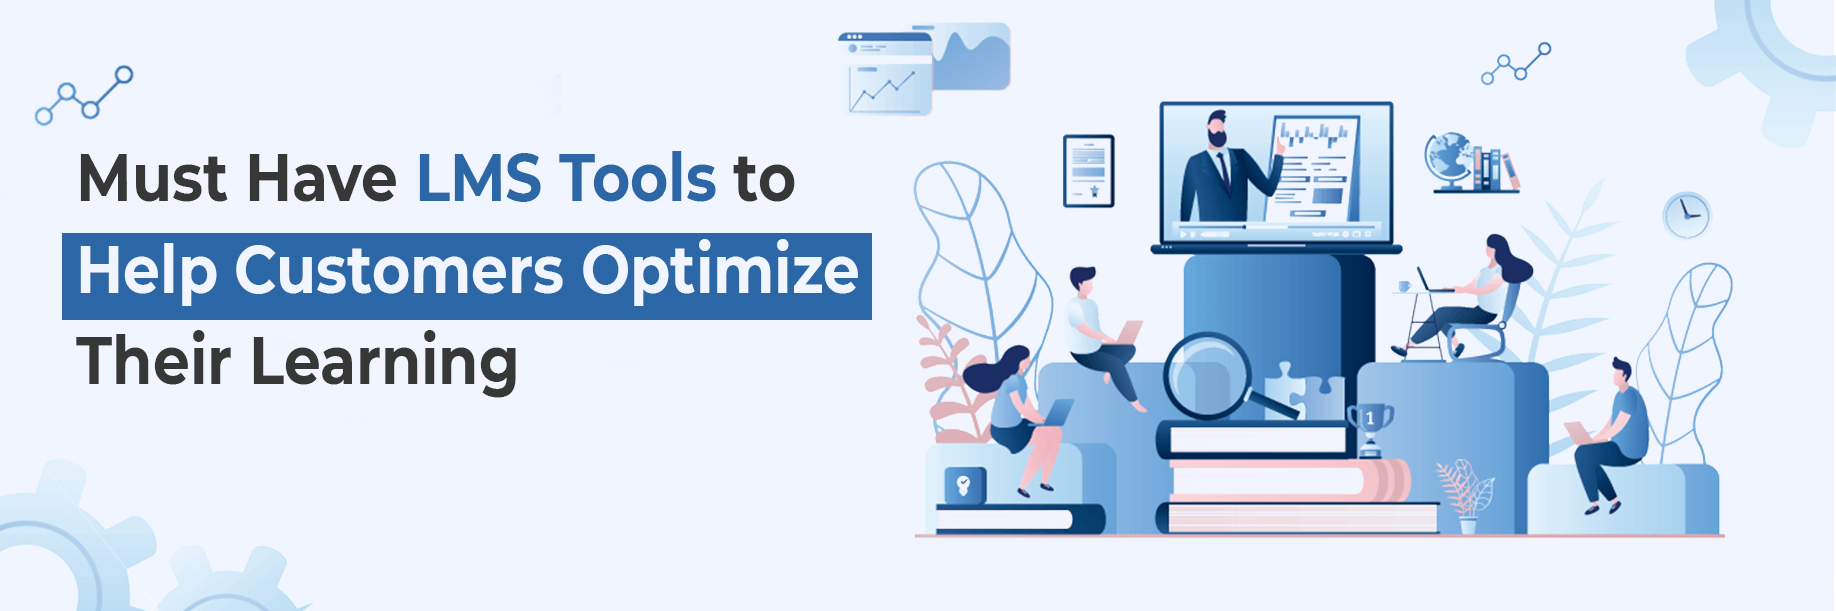 Must Have LMS Tools to Help Customers Optimize Their Learning